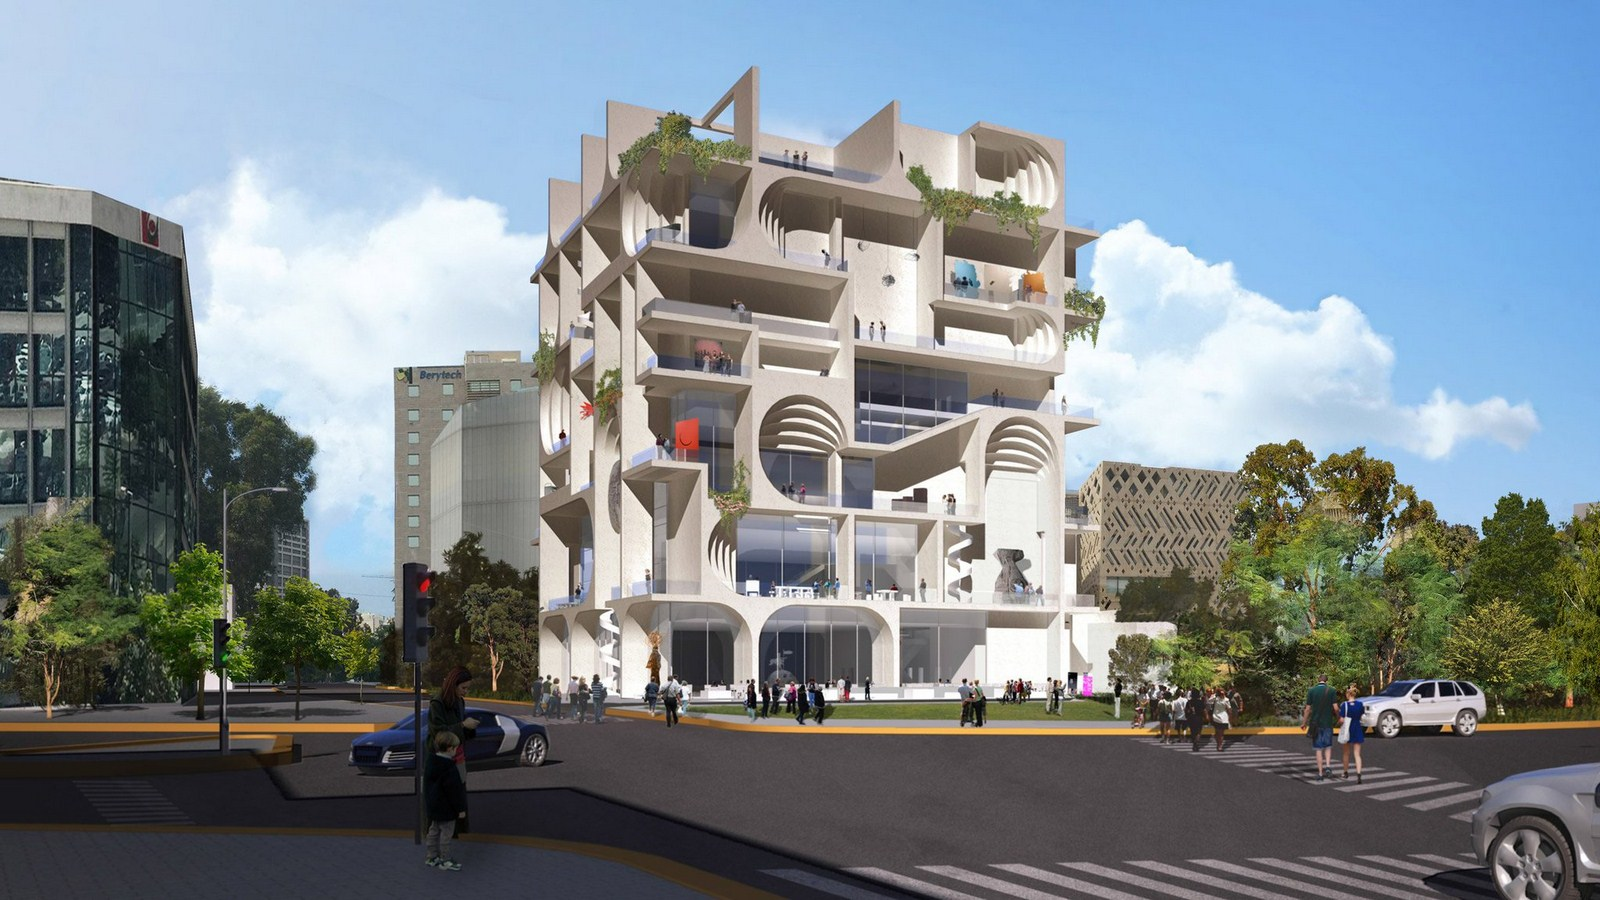 The proposal for the Beirut Museum of Art